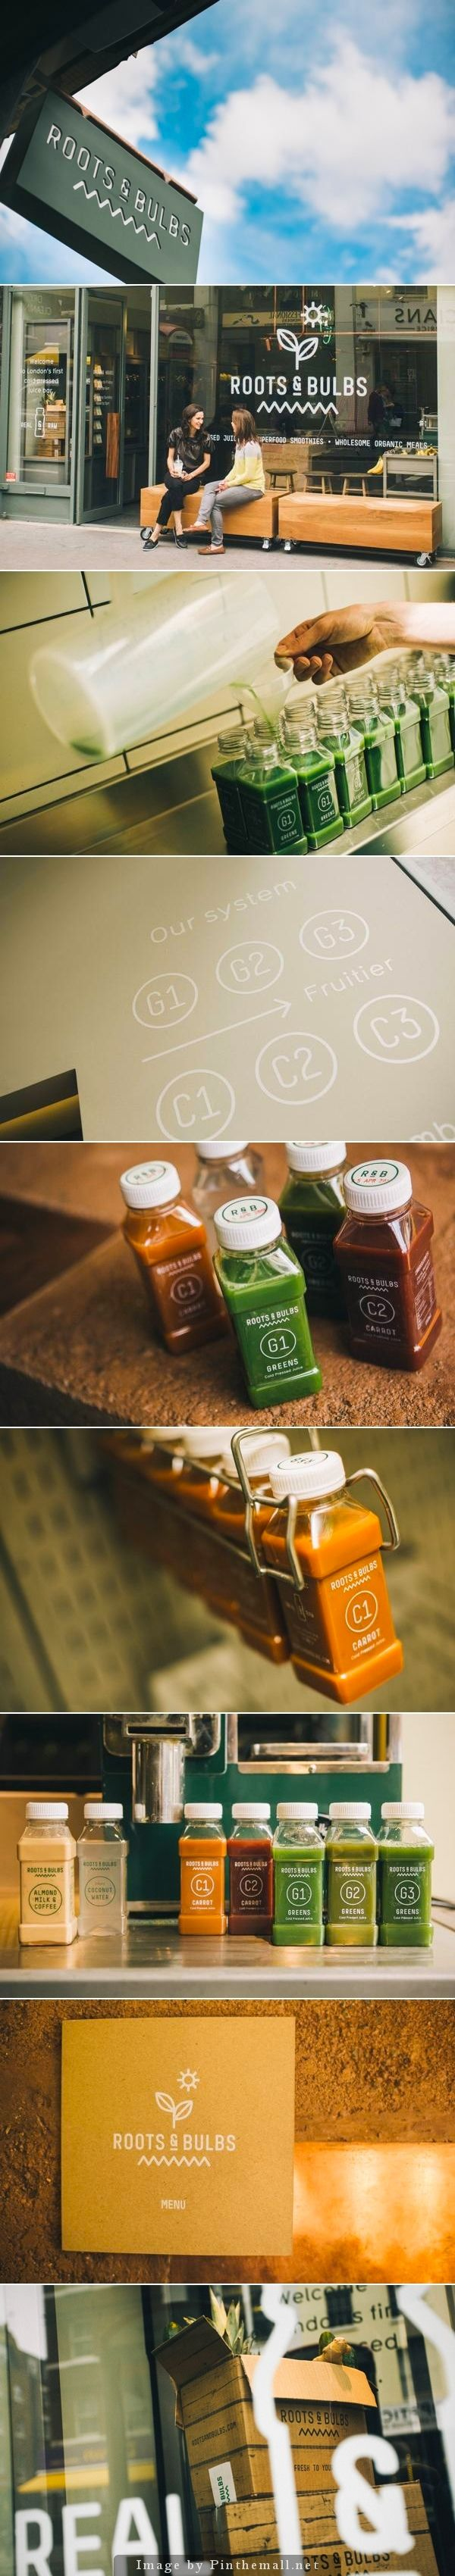 Root Bulbs #identity #branding #packaging #juice PD